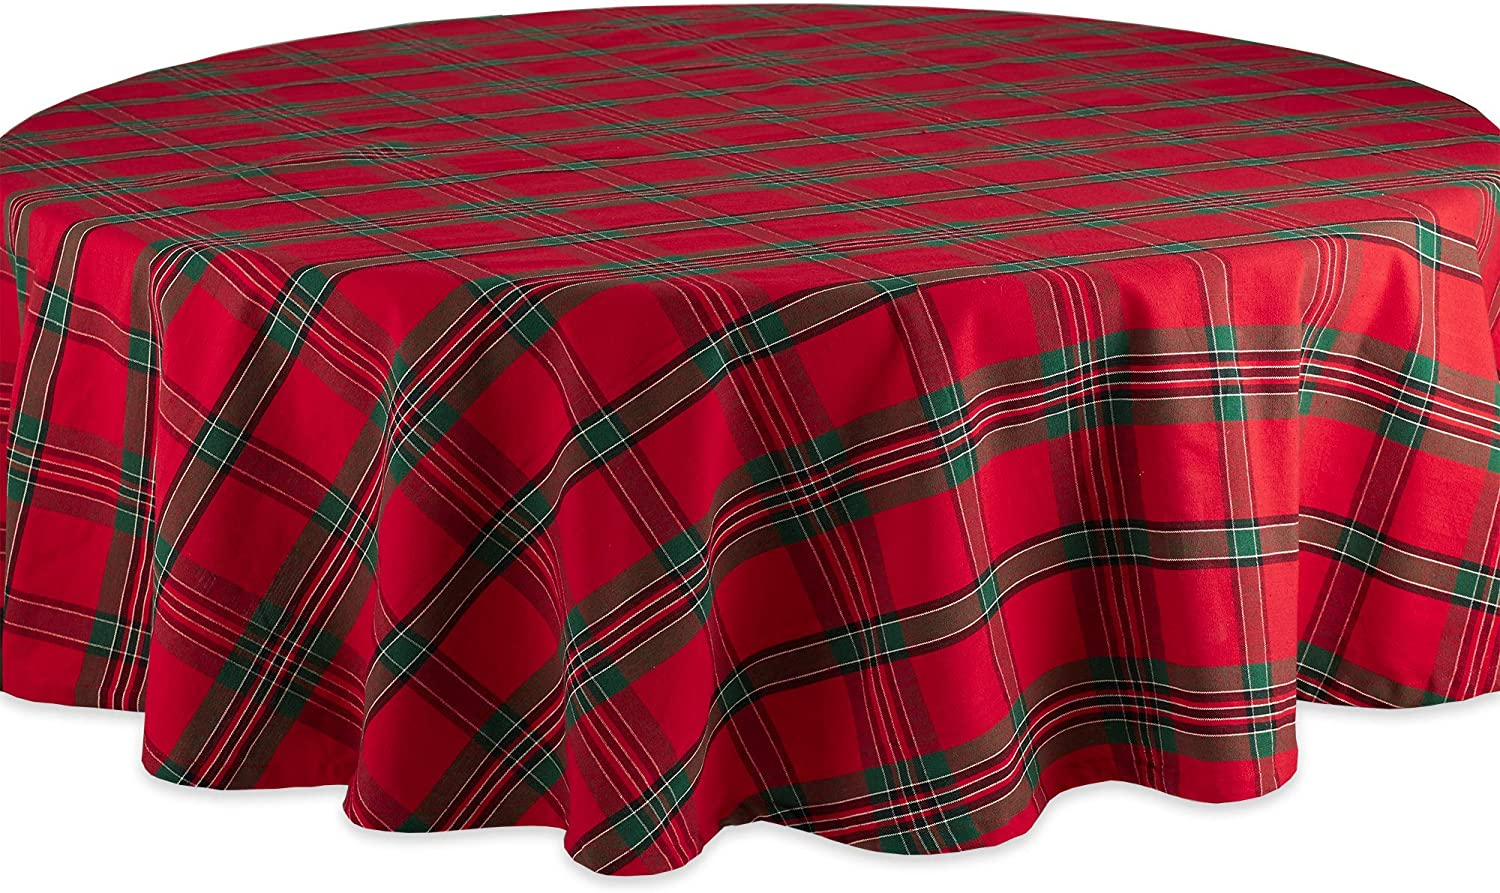 Amazon Com Dii Holiday Plaid Round Tablecloth 100 Cotton With 1 2 Hem For Holiday Family Gatherings Christmas Dinner 70 Seats 4 To 6 Furniture Decor